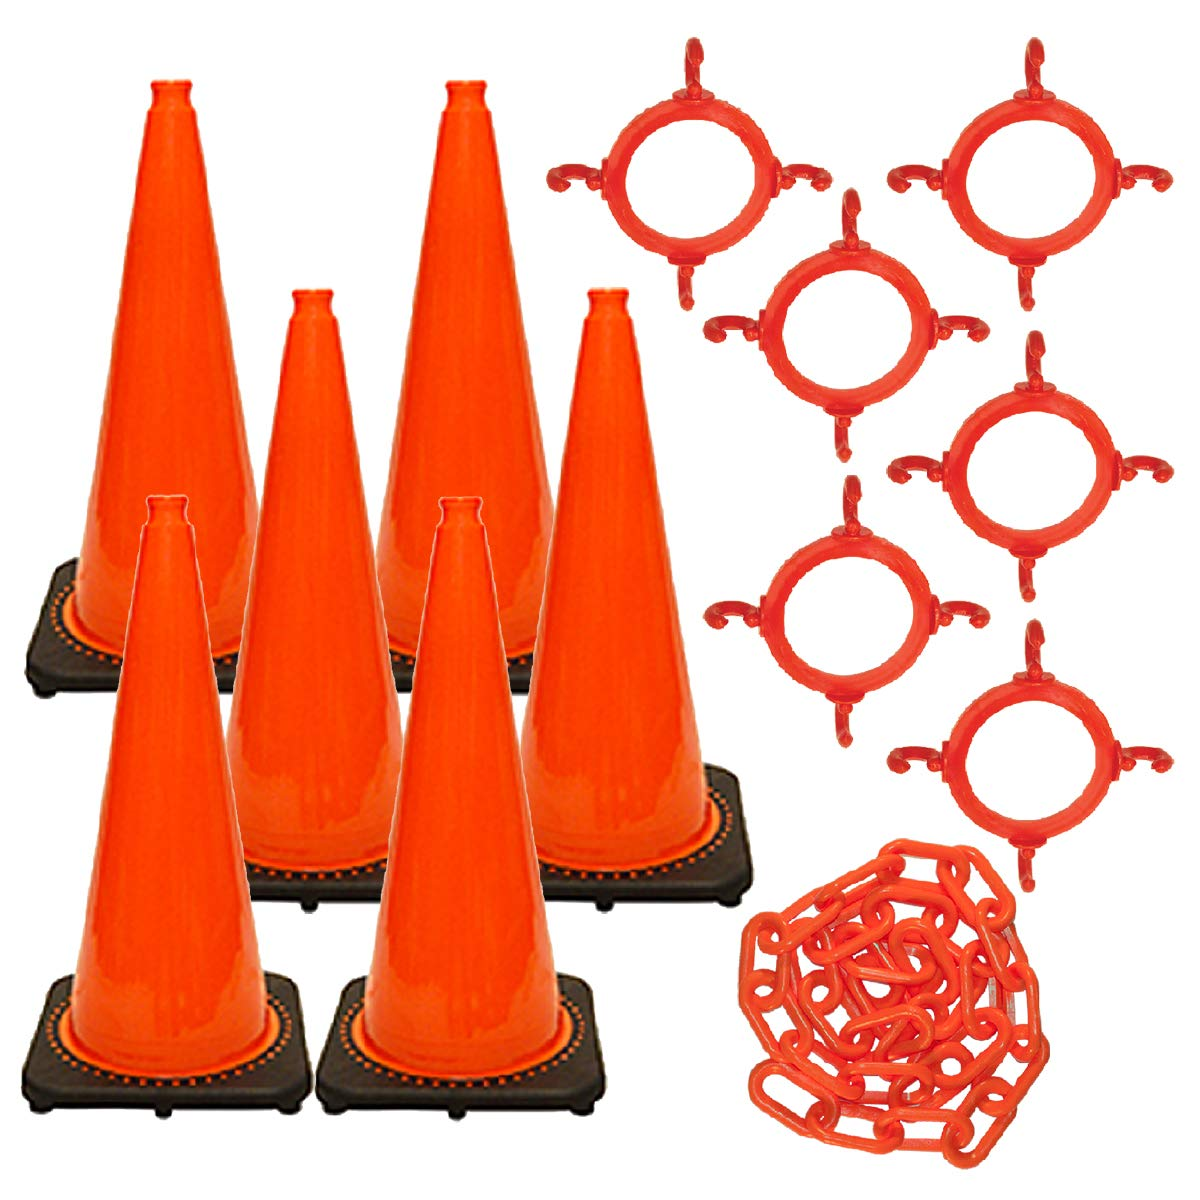 Mr. Chain Traffic Cone and Chain Kit, Traffic Orange, 28-Inch Height (93213-6) by Mr. Chain